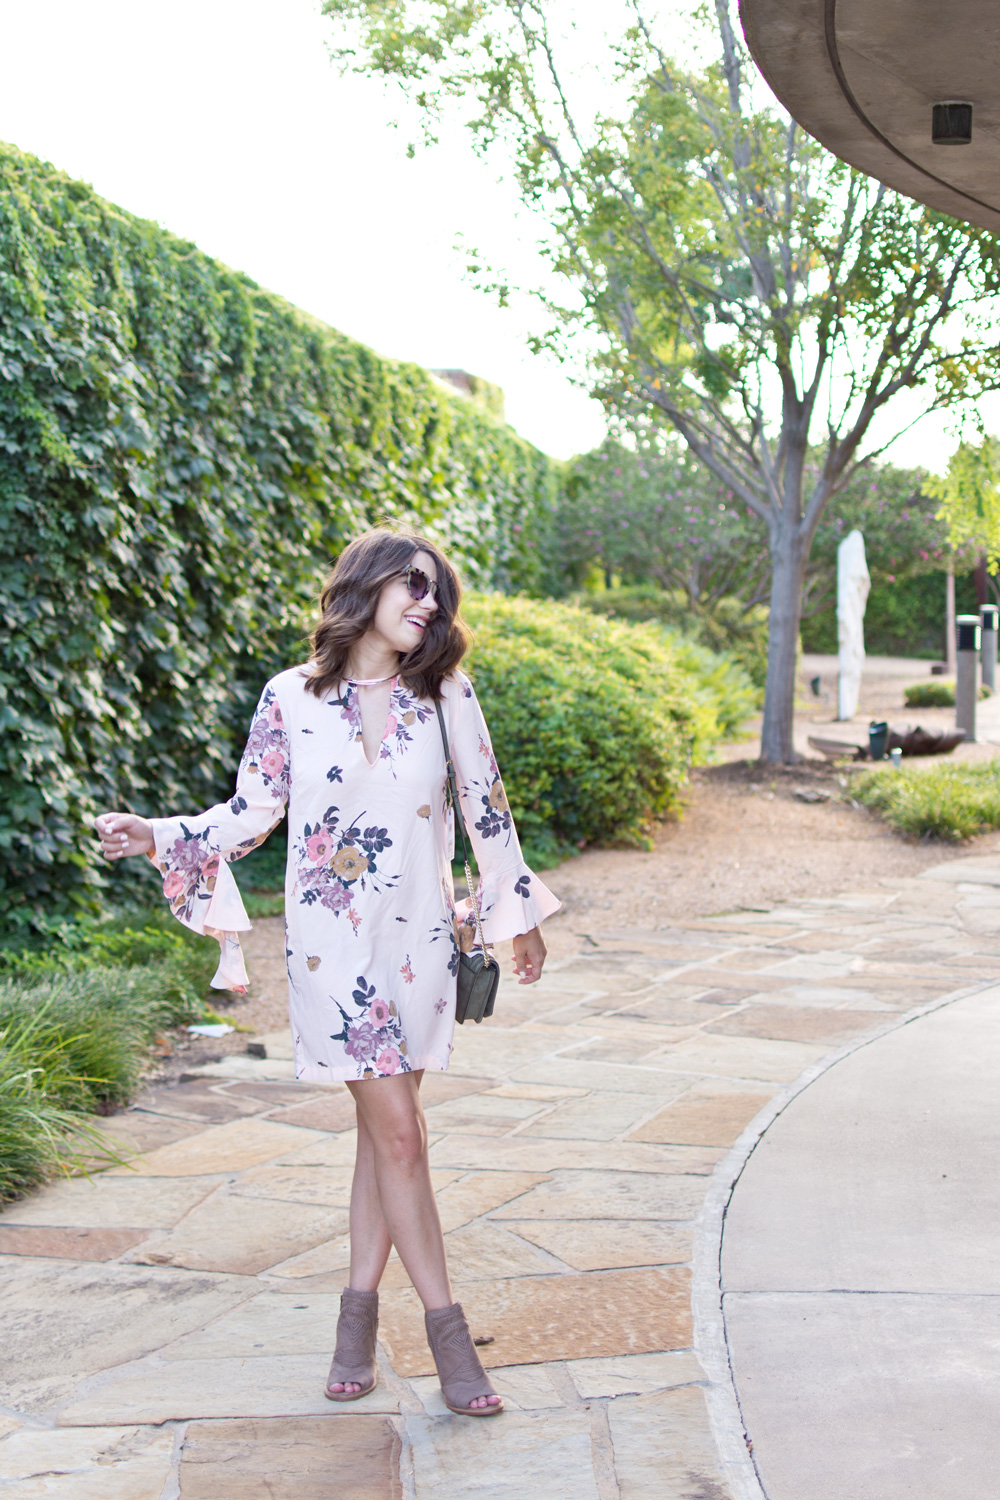 Fall Transition Outfit idea from the Nordstrom Anniversary Sale featuring green velvet rebecca minkoff bag, floral bell sleeve dress, and vince camuto booties